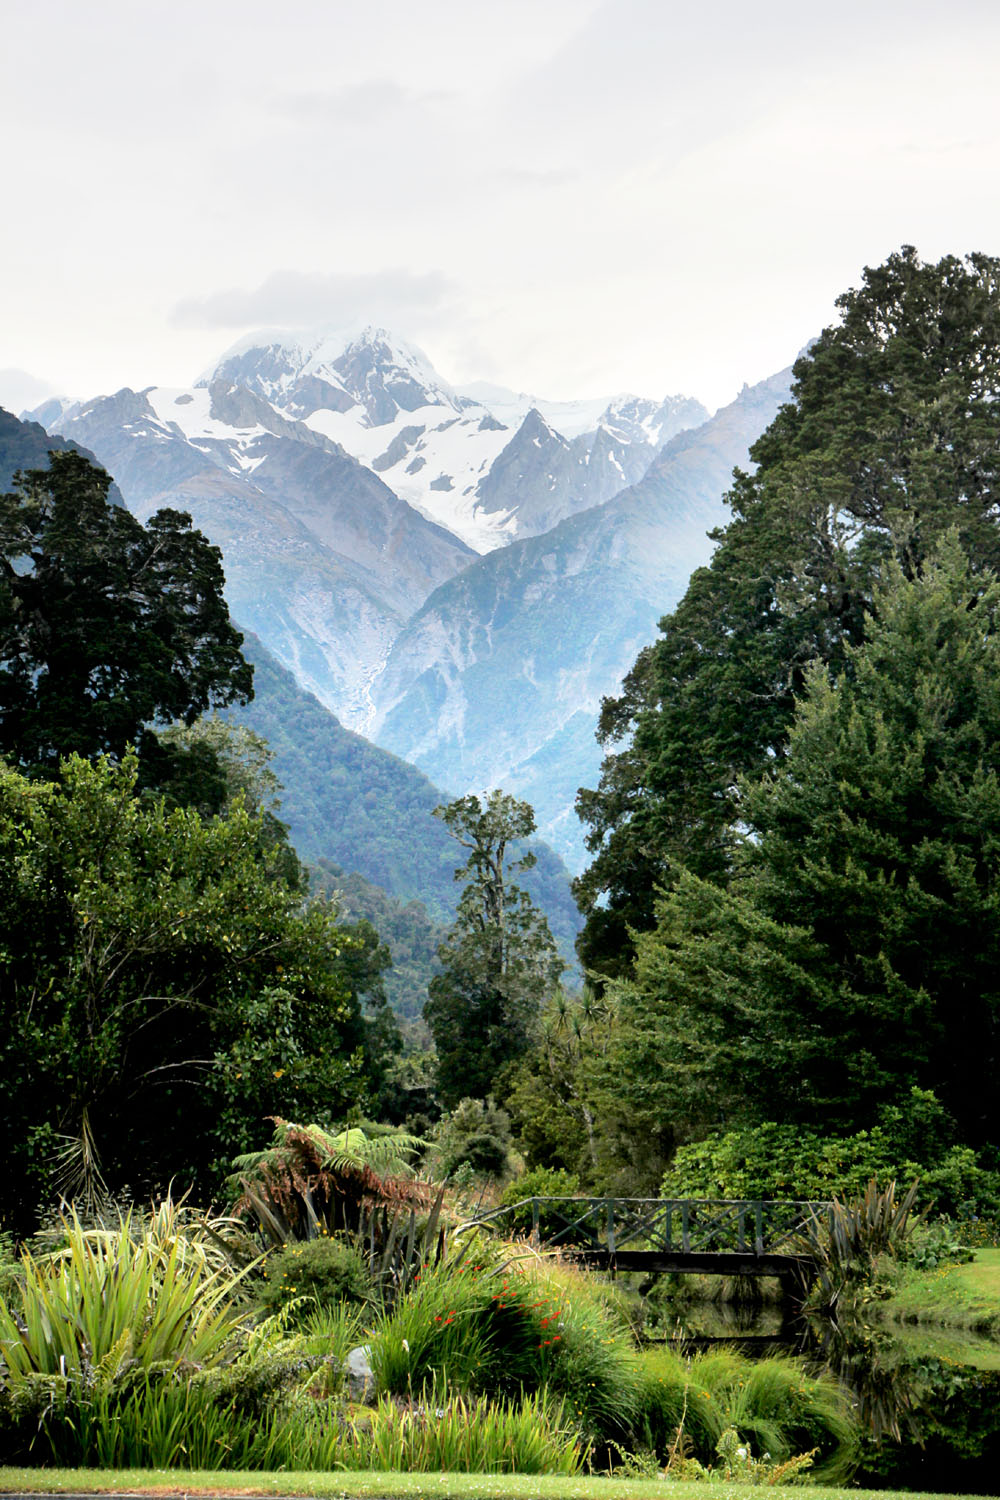 Reflection Lodge & Franz Josef Glacier, New Zealand